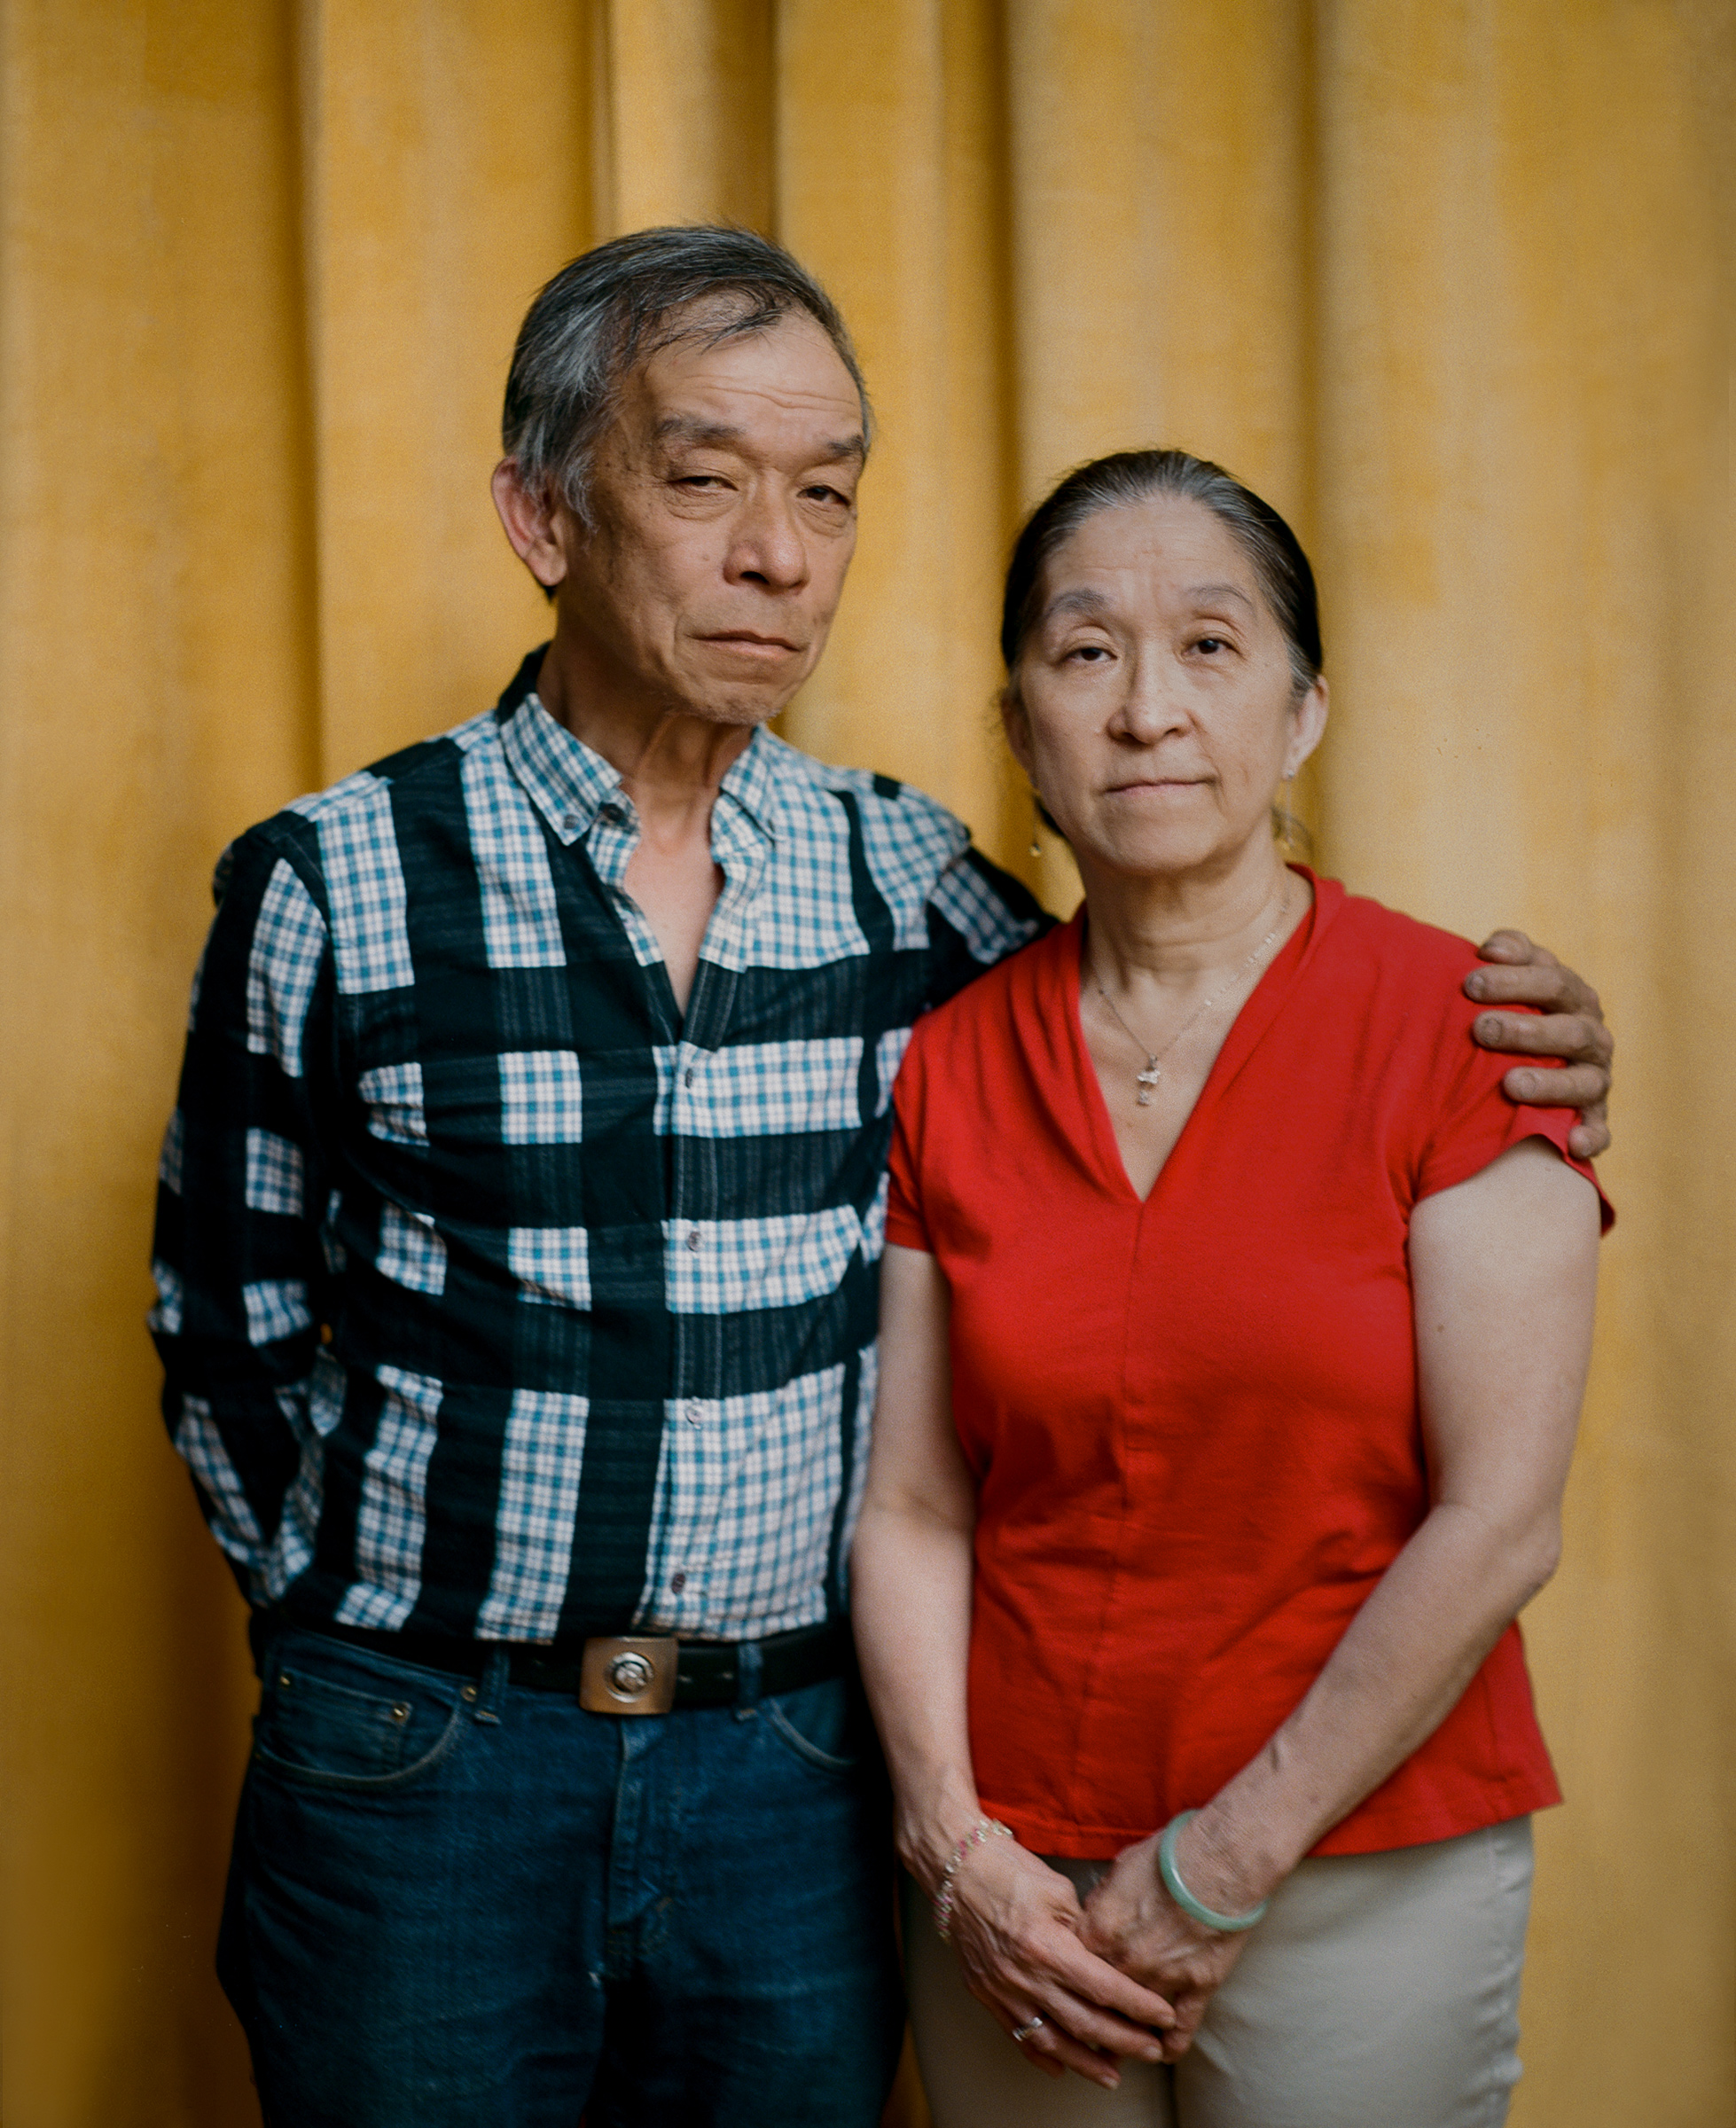 """'I'M PROUD OF WHAT HE DID.' Tommy Lau, 63, stands beside his older sister Maggie Wong inside his Brooklyn home on May 22. On March 23, Lau rushed to protect an elderly Asian couple who were being robbed of their groceries—a choice that Wong says reflects her brother's typical boldness. But when Lau intervened, the man spat on his face, punched him on the side of his head and called him a racial slur. Lau has not been able to return to work as a New York City bus driver, because of neck and shoulder injuries he sustained during the attack. Wong, 66, says it's been difficult to watch her brother continue to struggle months later. """"I feel bad,"""" she says, adding that she supports Lau, emotionally and financially, whenever he needs it. """"I'm proud of what he did."""" Meanwhile, despite all that he's endured, Lau doesn't regret getting involved that day. Since immigrating to the U.S. from Hong Kong at age 3, he has long faced racism—his elementary-school classmates bullied him so often about his birth name, Kok Wah Lau, that his teacher changed it to Tommy—and he has had enough. """"The lowest low of people does that, attacking the elderly,"""" he says. """"I just couldn't take it anymore."""""""